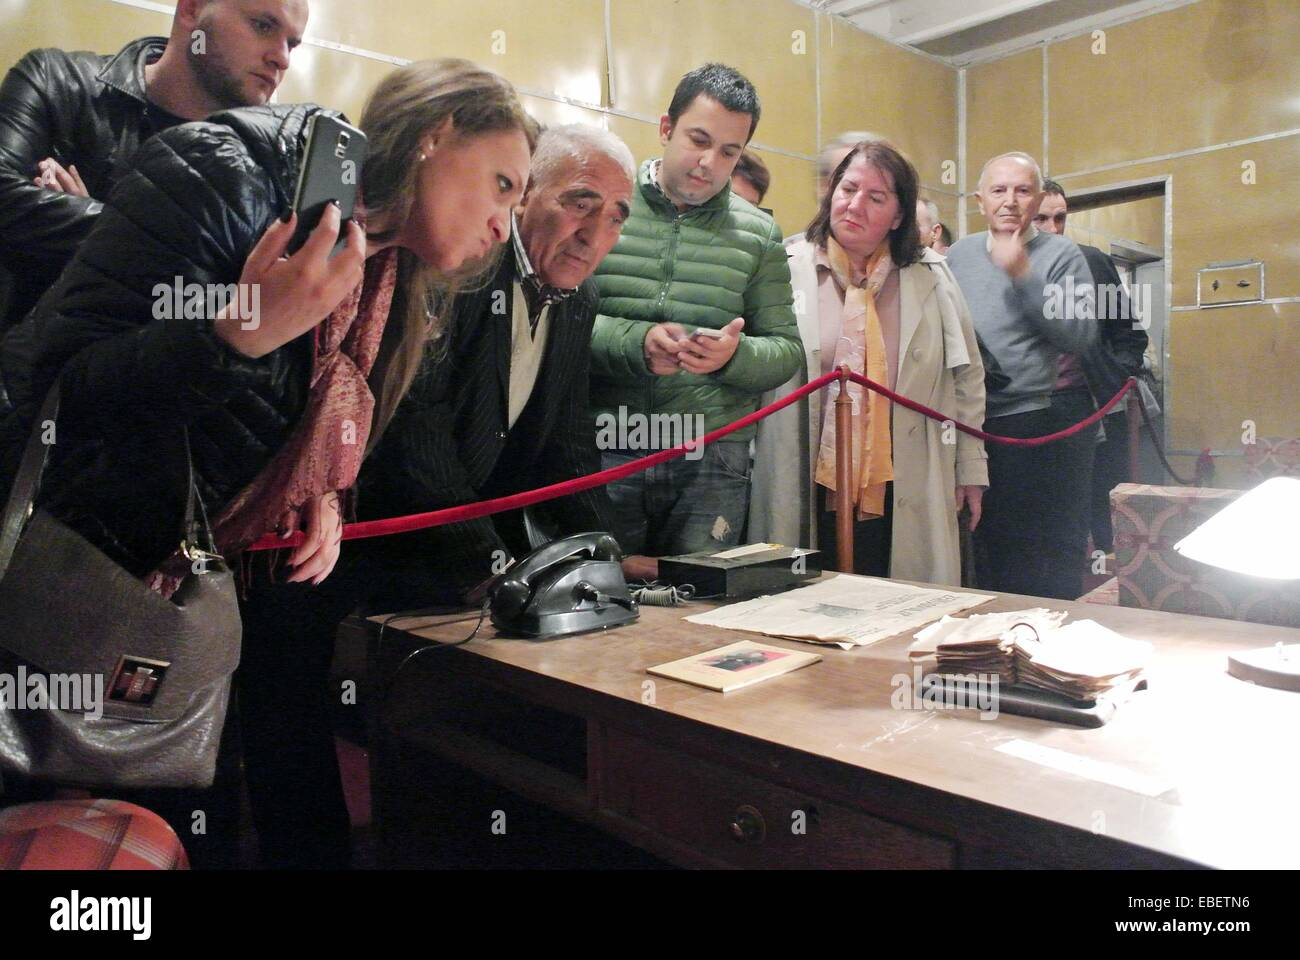 Tirana. 29th Nov, 2014. People visit the anti-nuclear bunker built by former Albanian leader Enver Hoxha, east of - Stock Image